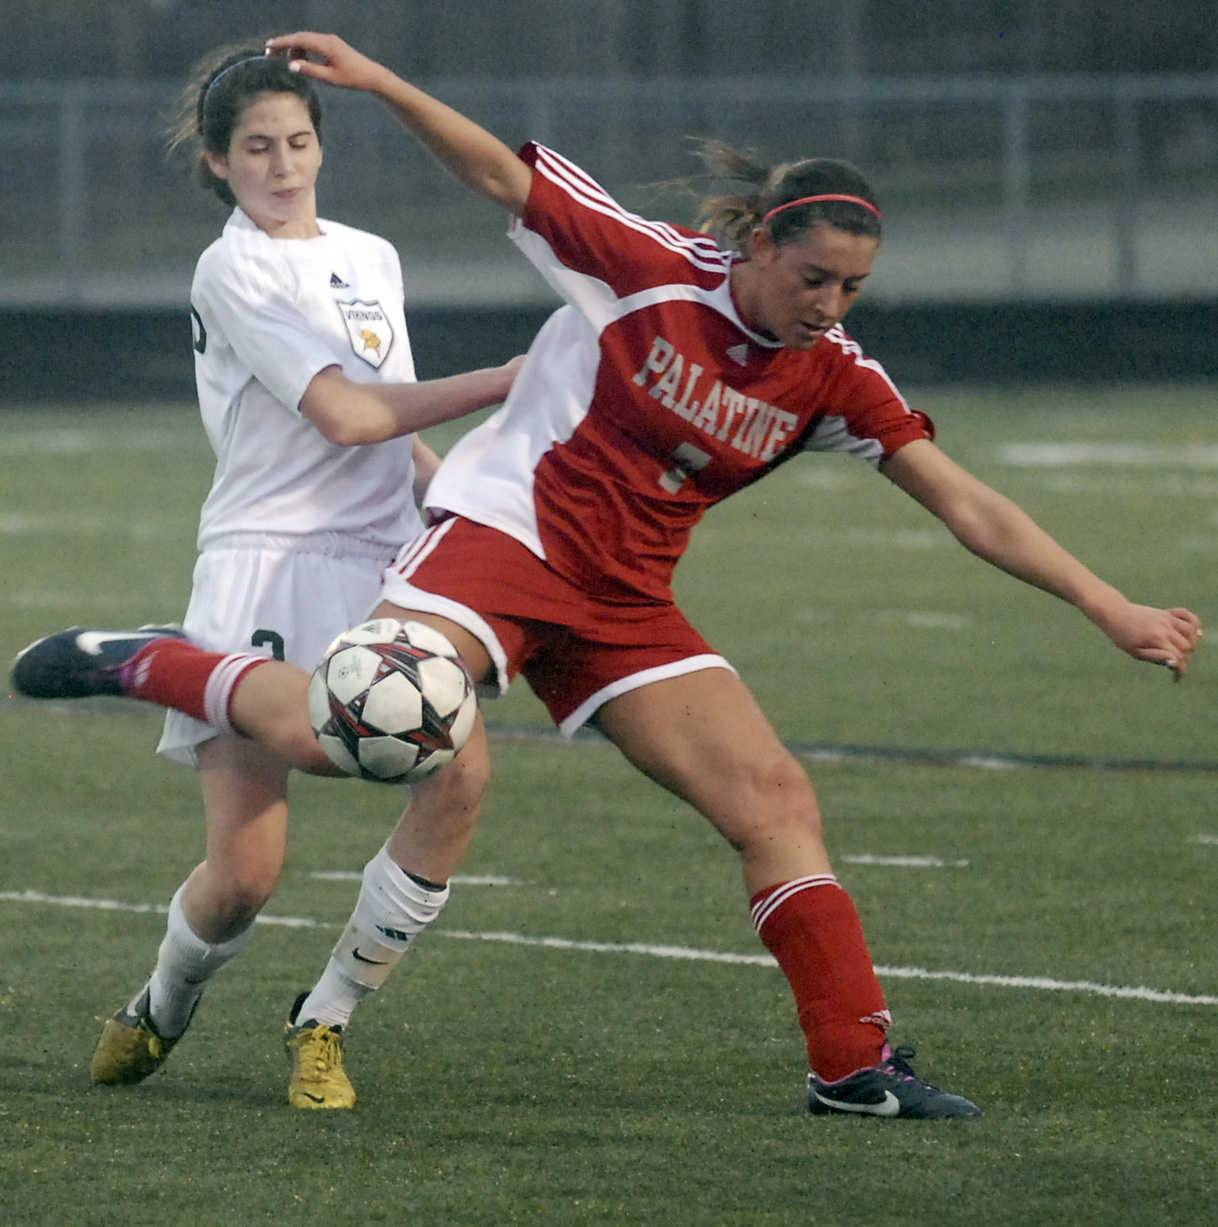 Palatine's Michelle Raymond, right, battles Fremd's Jessica Kopec for possession on Monday at Hale Hildebrandt Field.